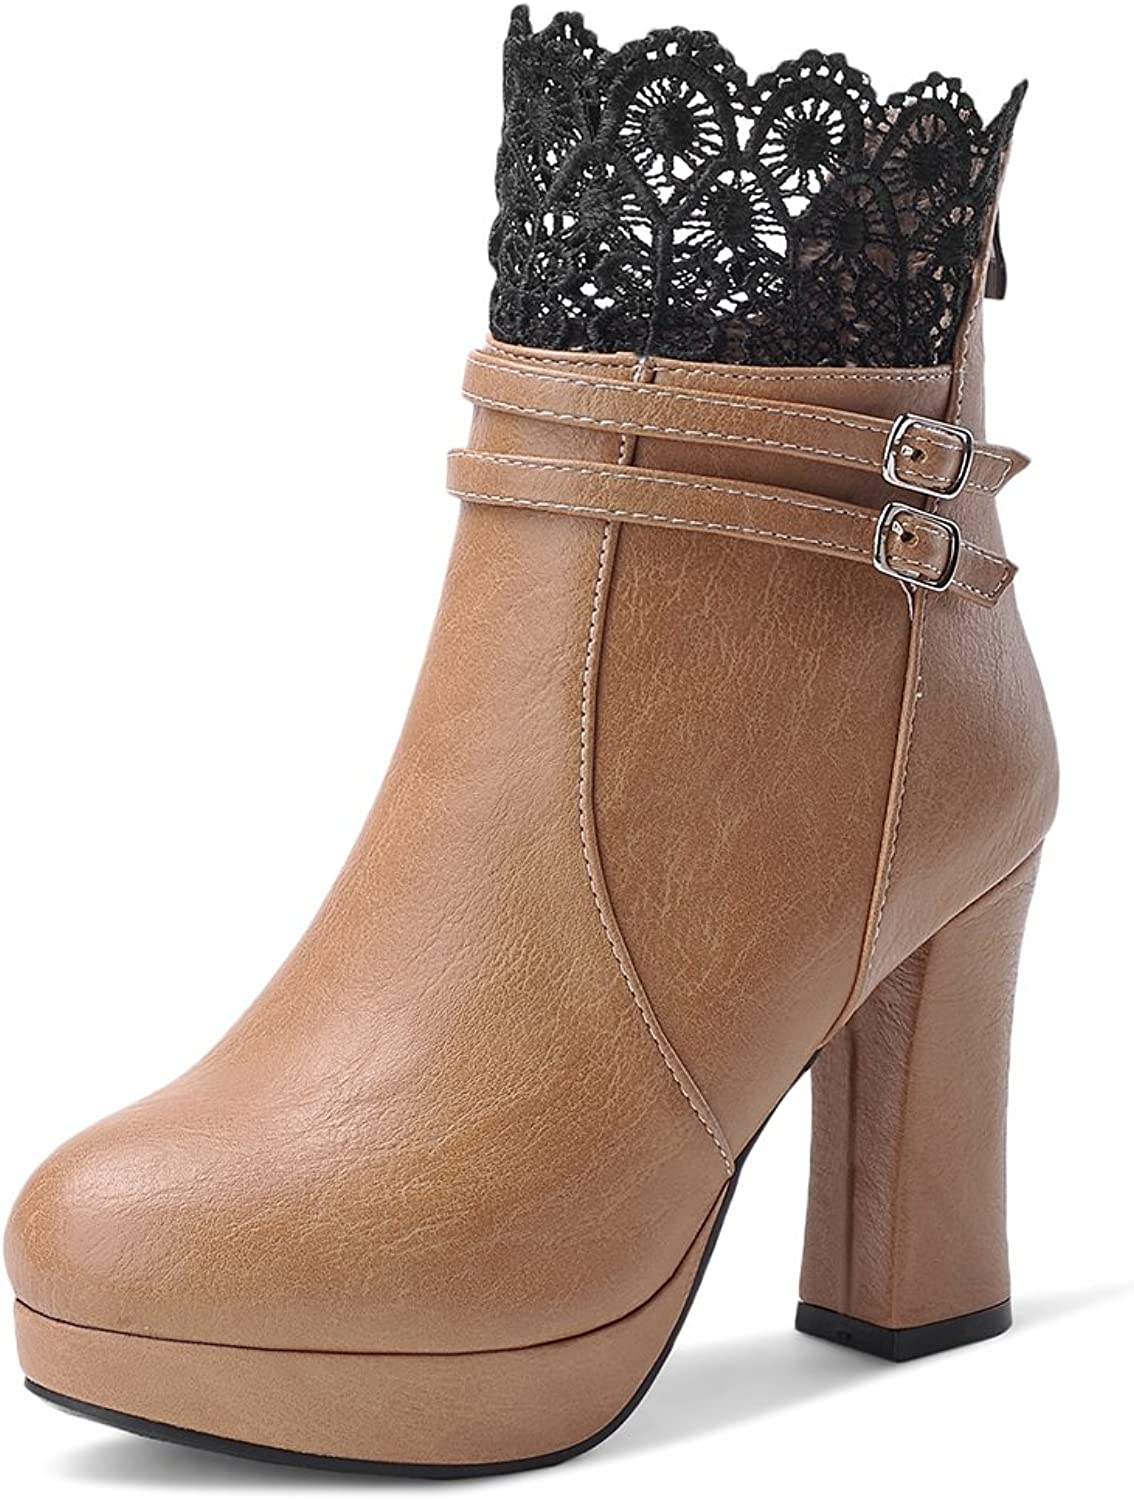 DecoStain Women's Lace Ornamented Solid Zipper High Heel Boots